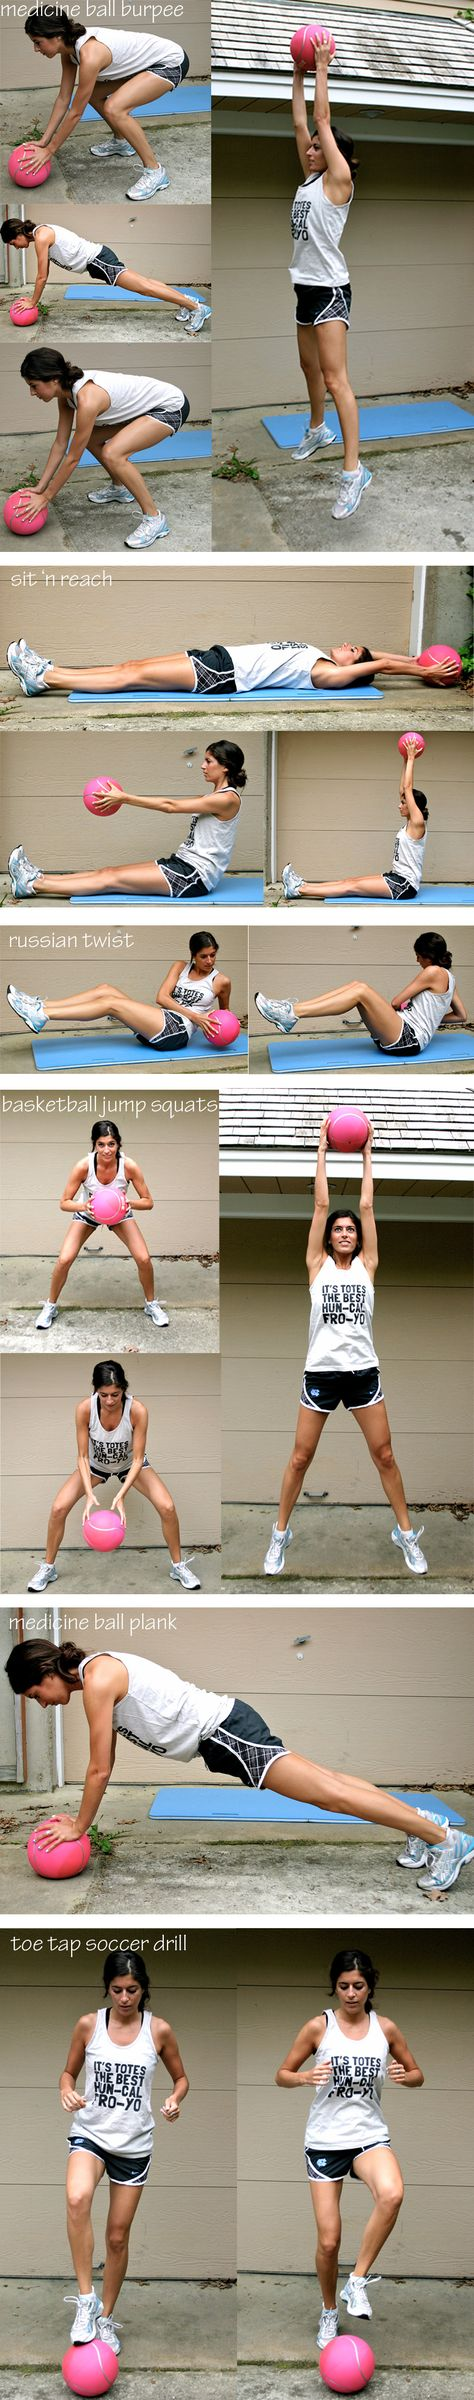 best My Crush images on Pinterest Exercise workouts Fitness